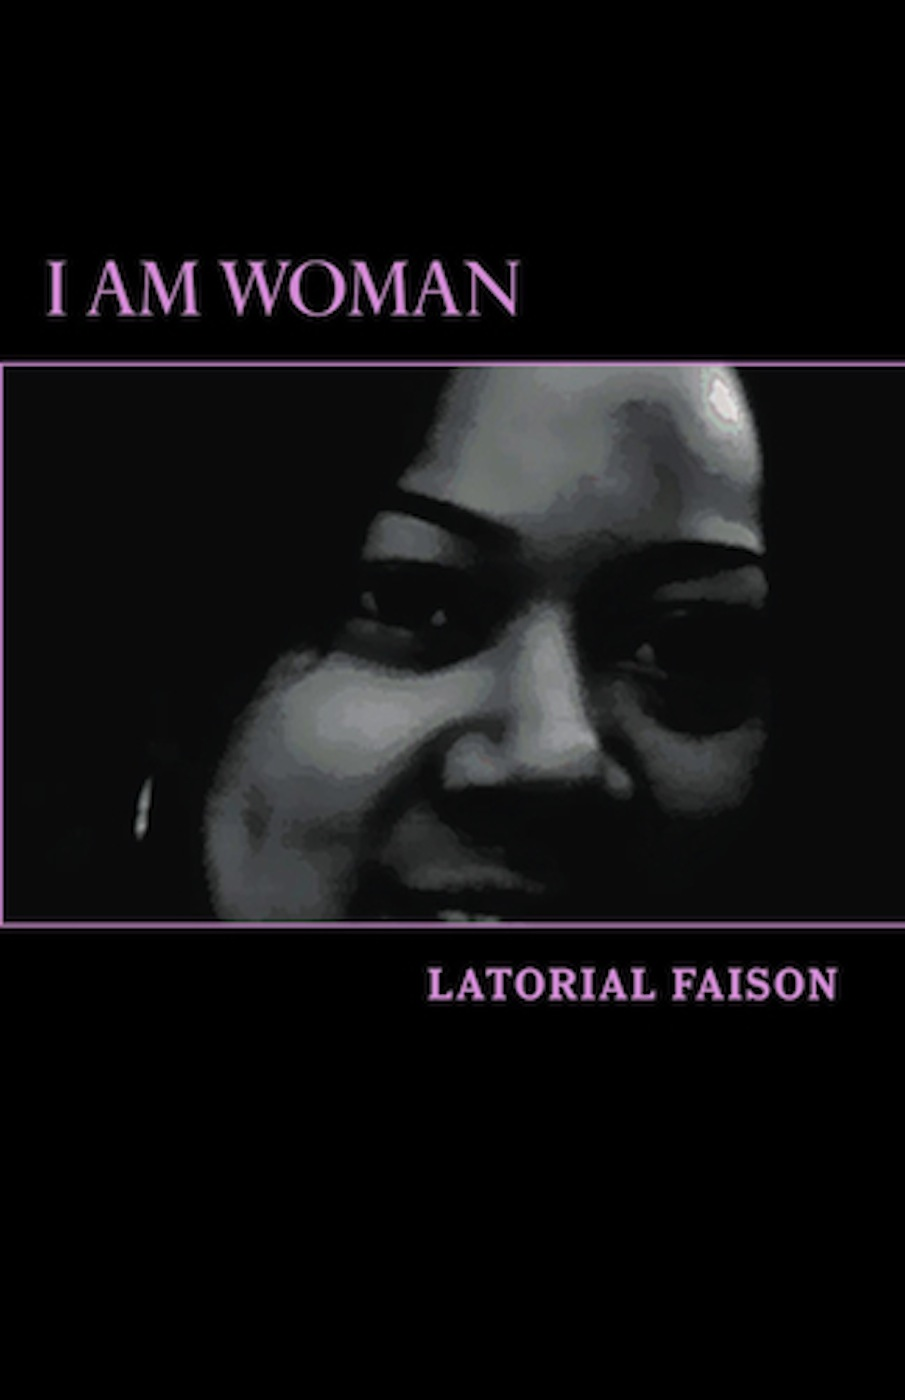 I AM WOMAN available at Amazon & Barnes n' Noble in paperback and ebook format!